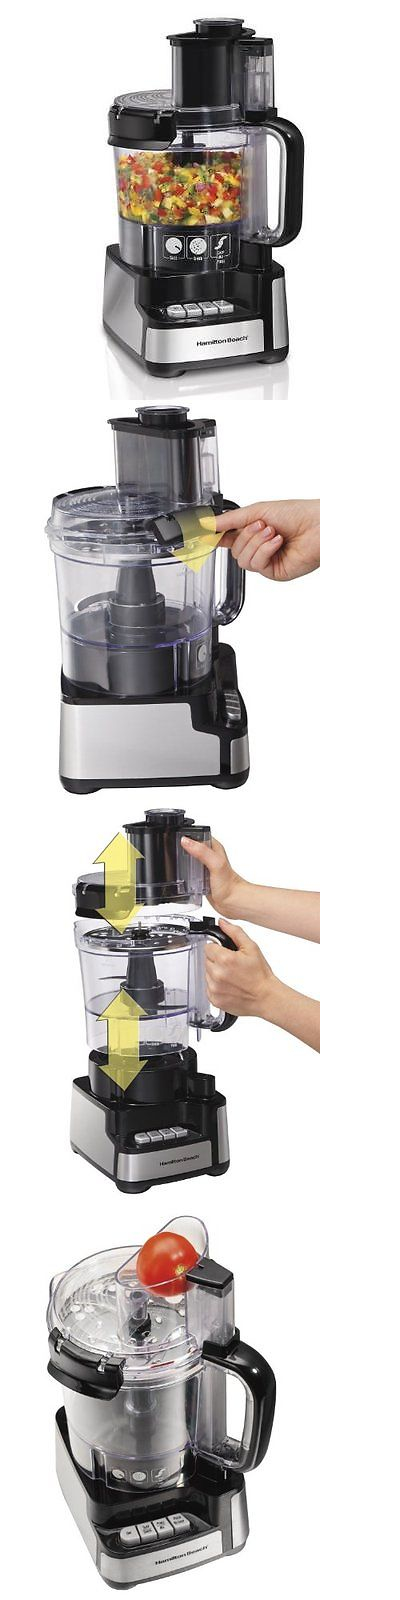 Small Kitchen Appliances Hamilton Beach 12 Cup Stack And Snap Food